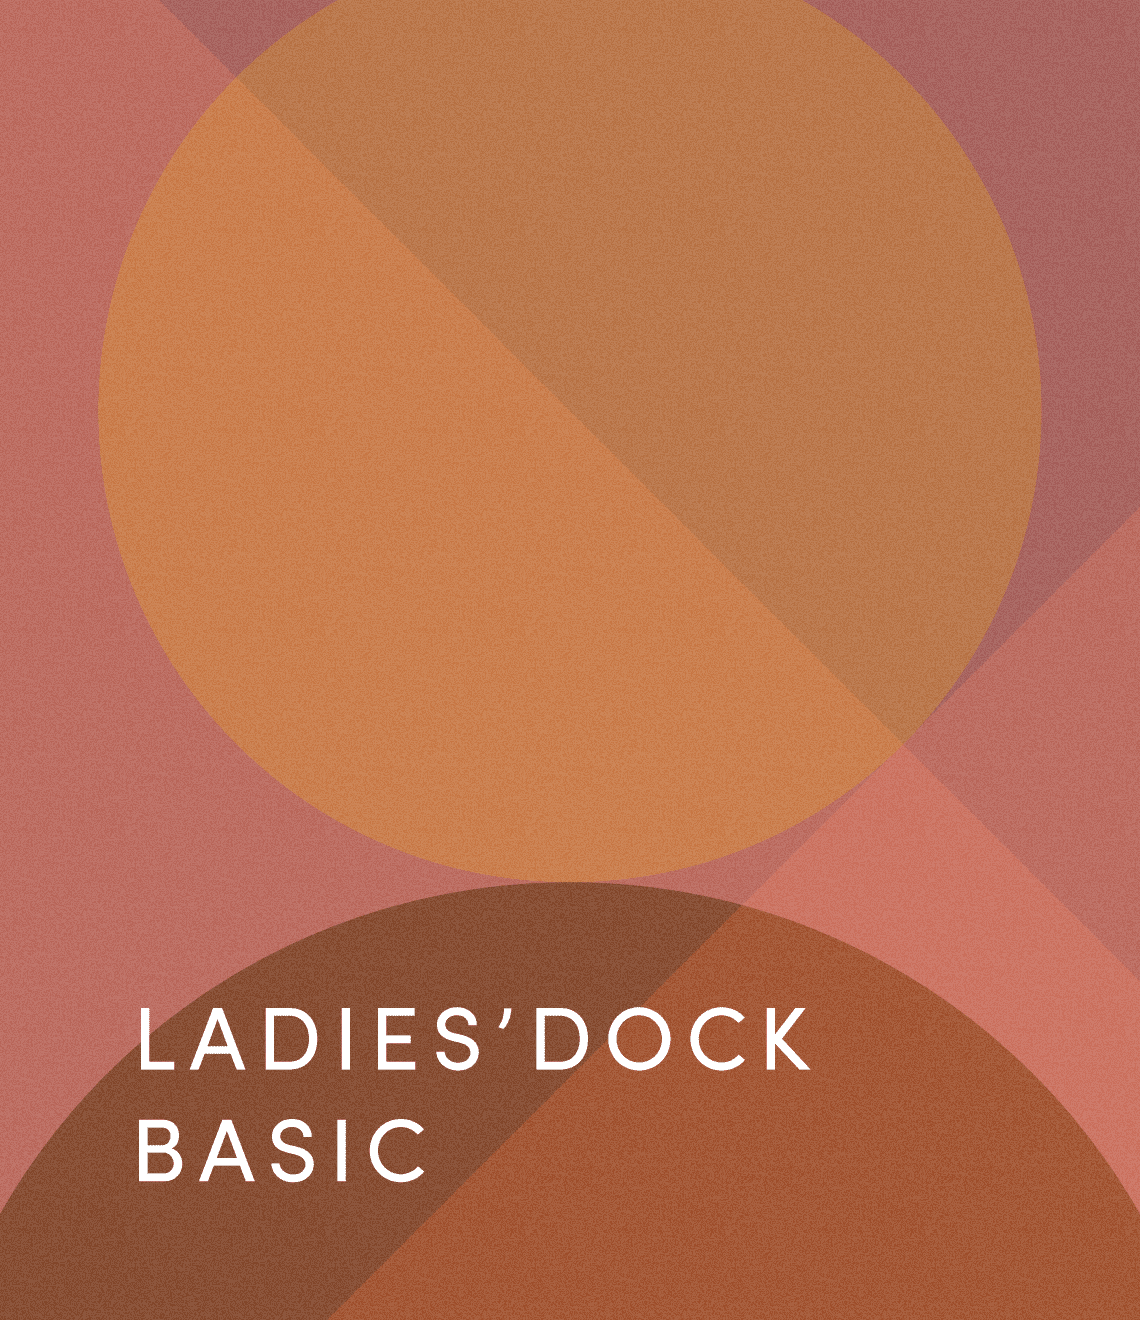 LADY'S DOCK BASIC